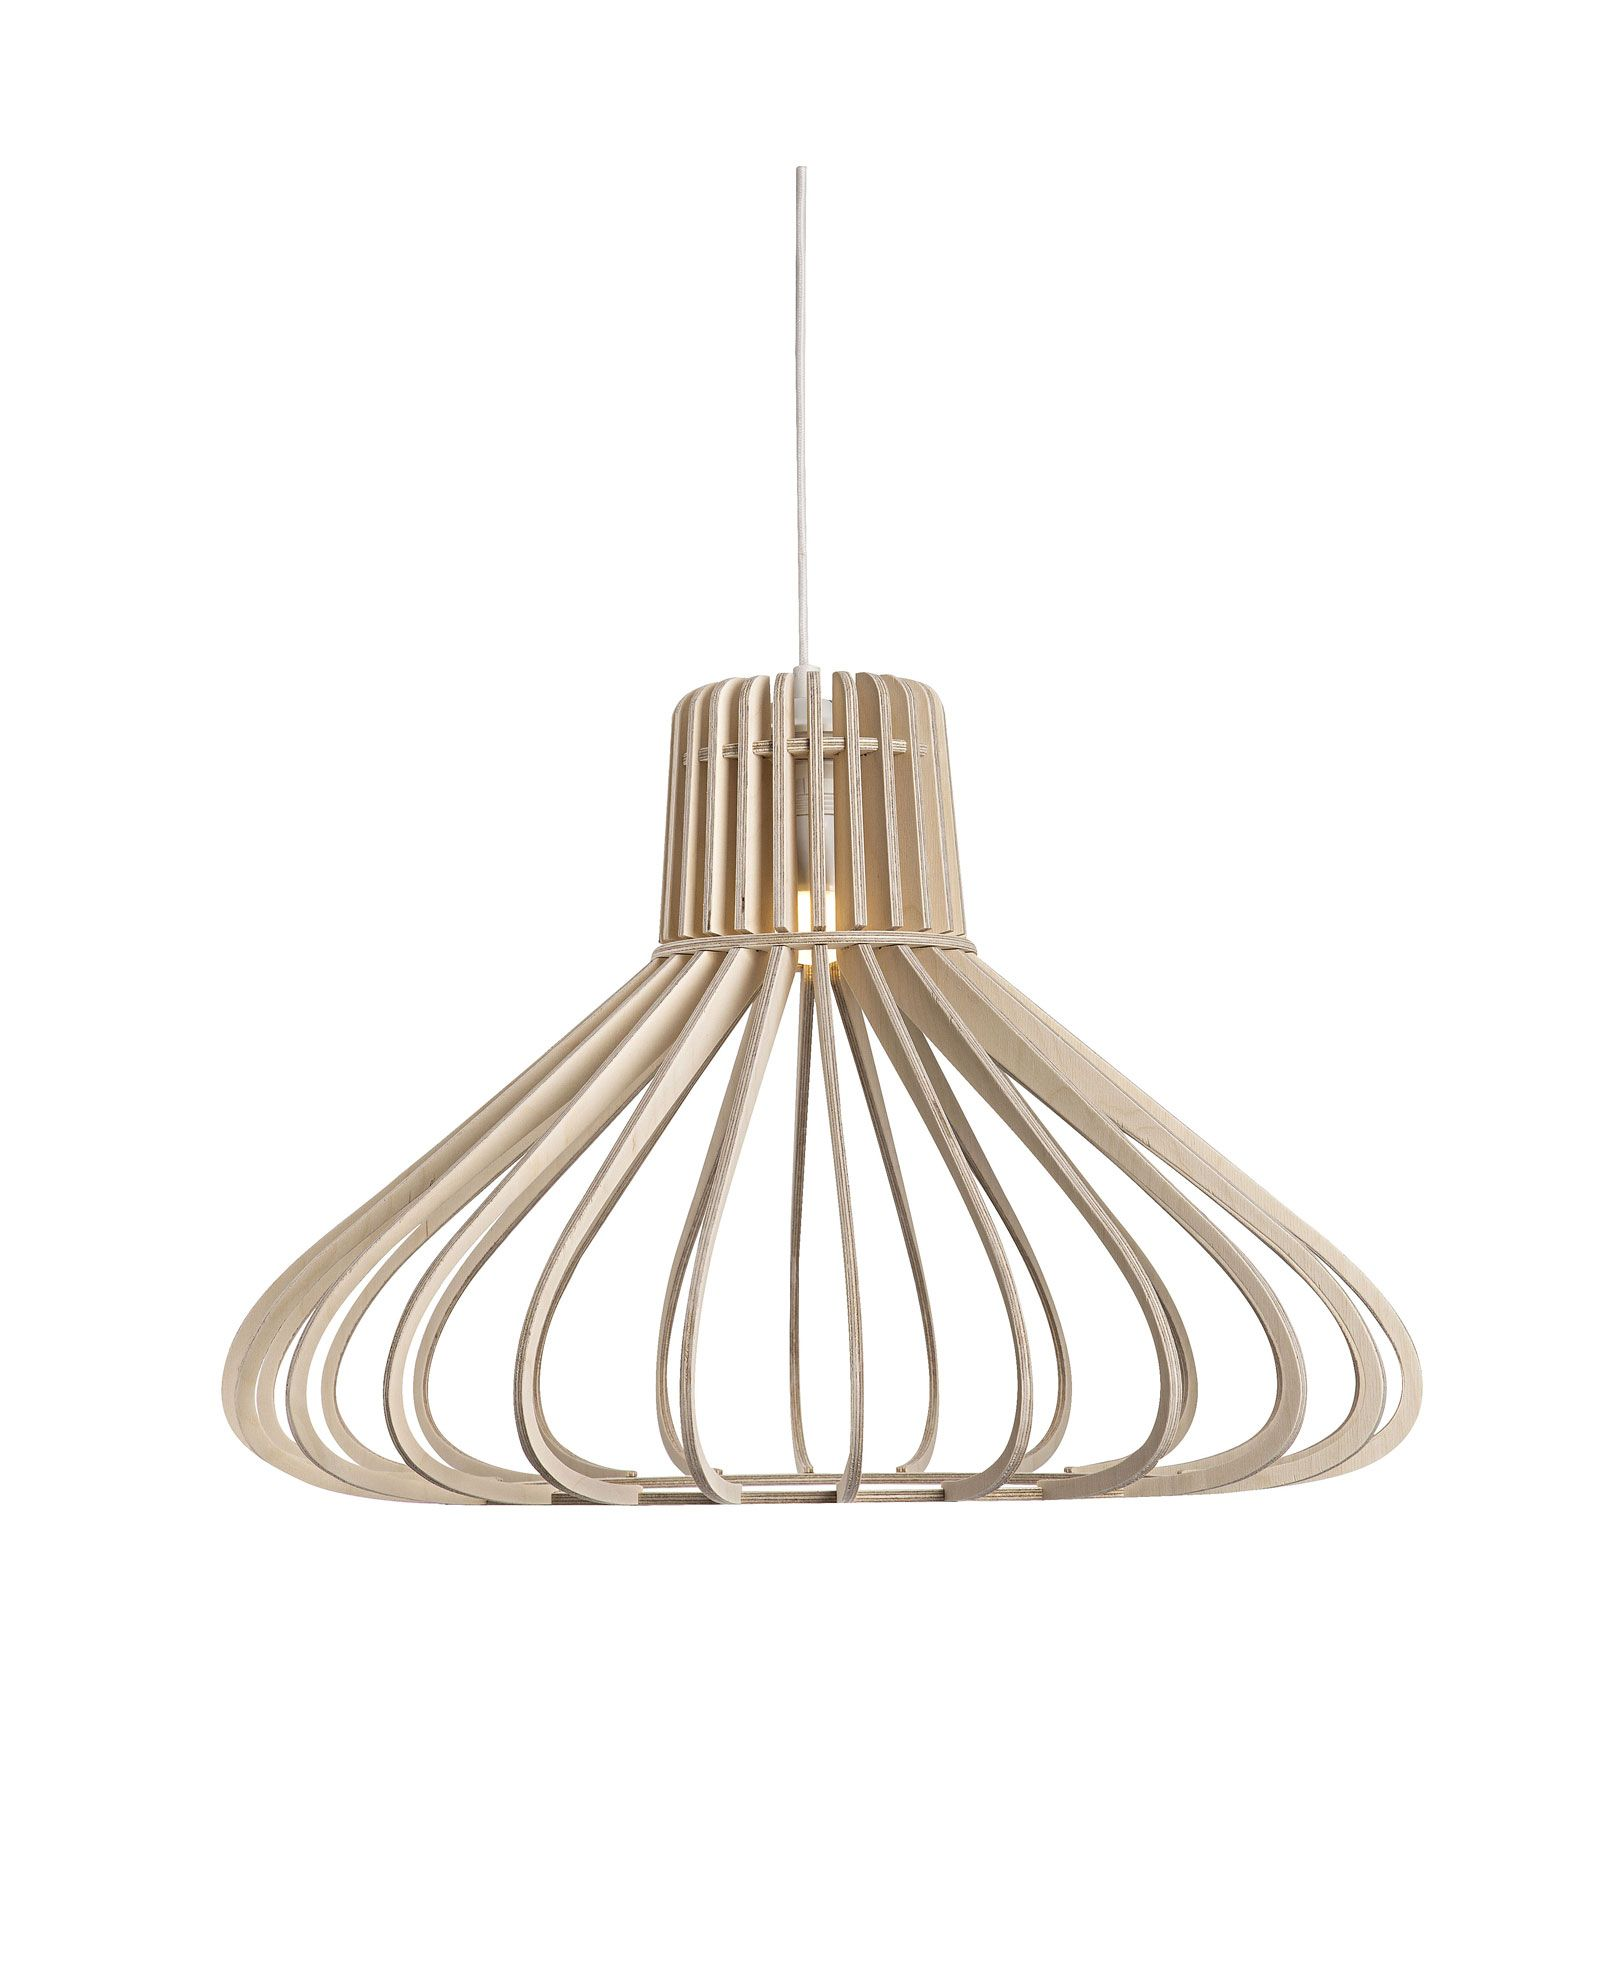 Minima lotus pendant light fitting with cord set and ceiling cup minima lotus pendant light fitting with cord set and ceiling cup shop online with your aloadofball Image collections